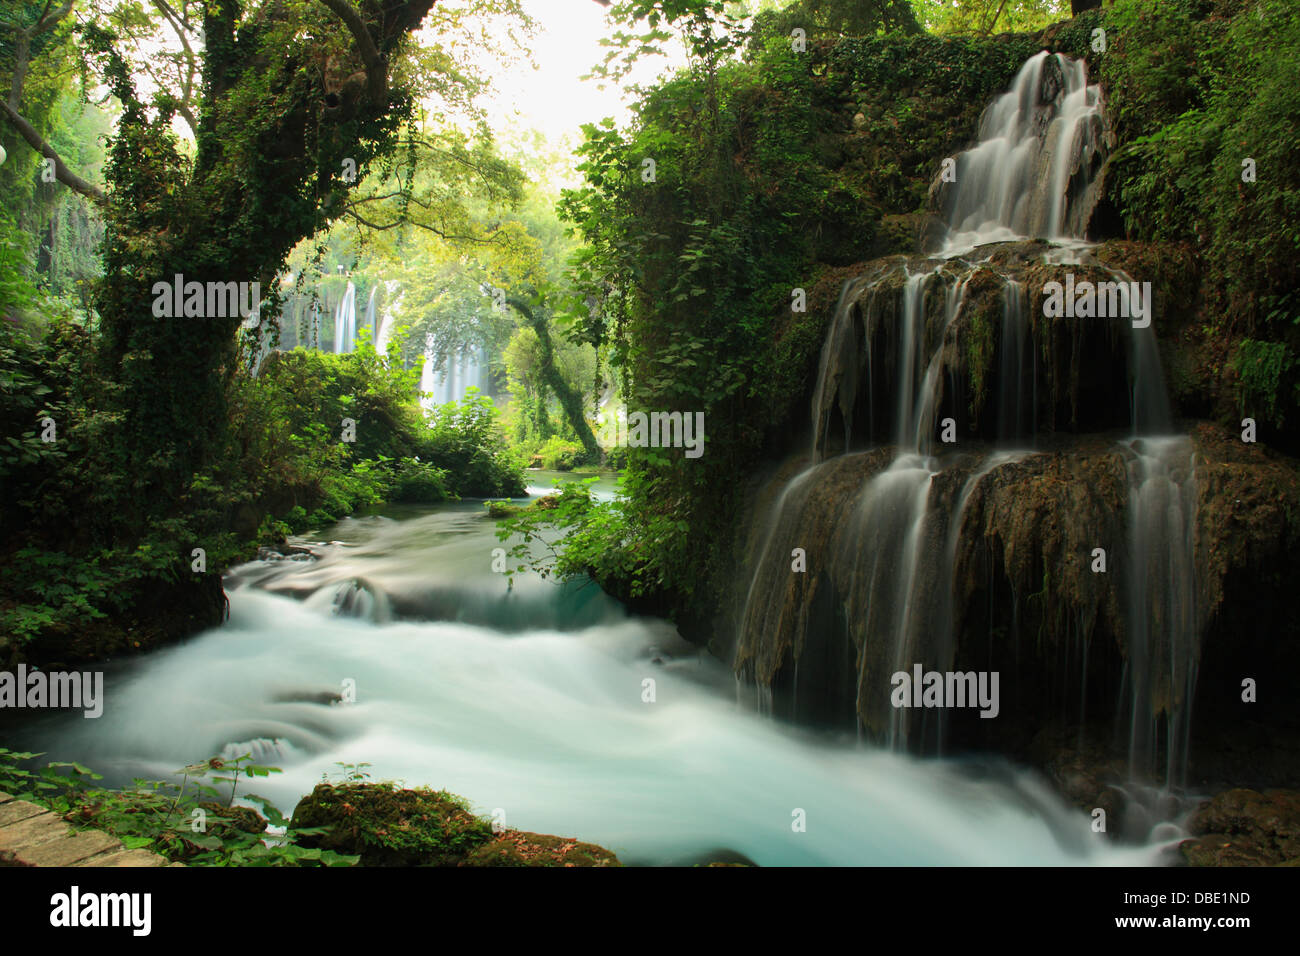 tourquoise stream landscape in forest with view of big waterfall - Stock Image